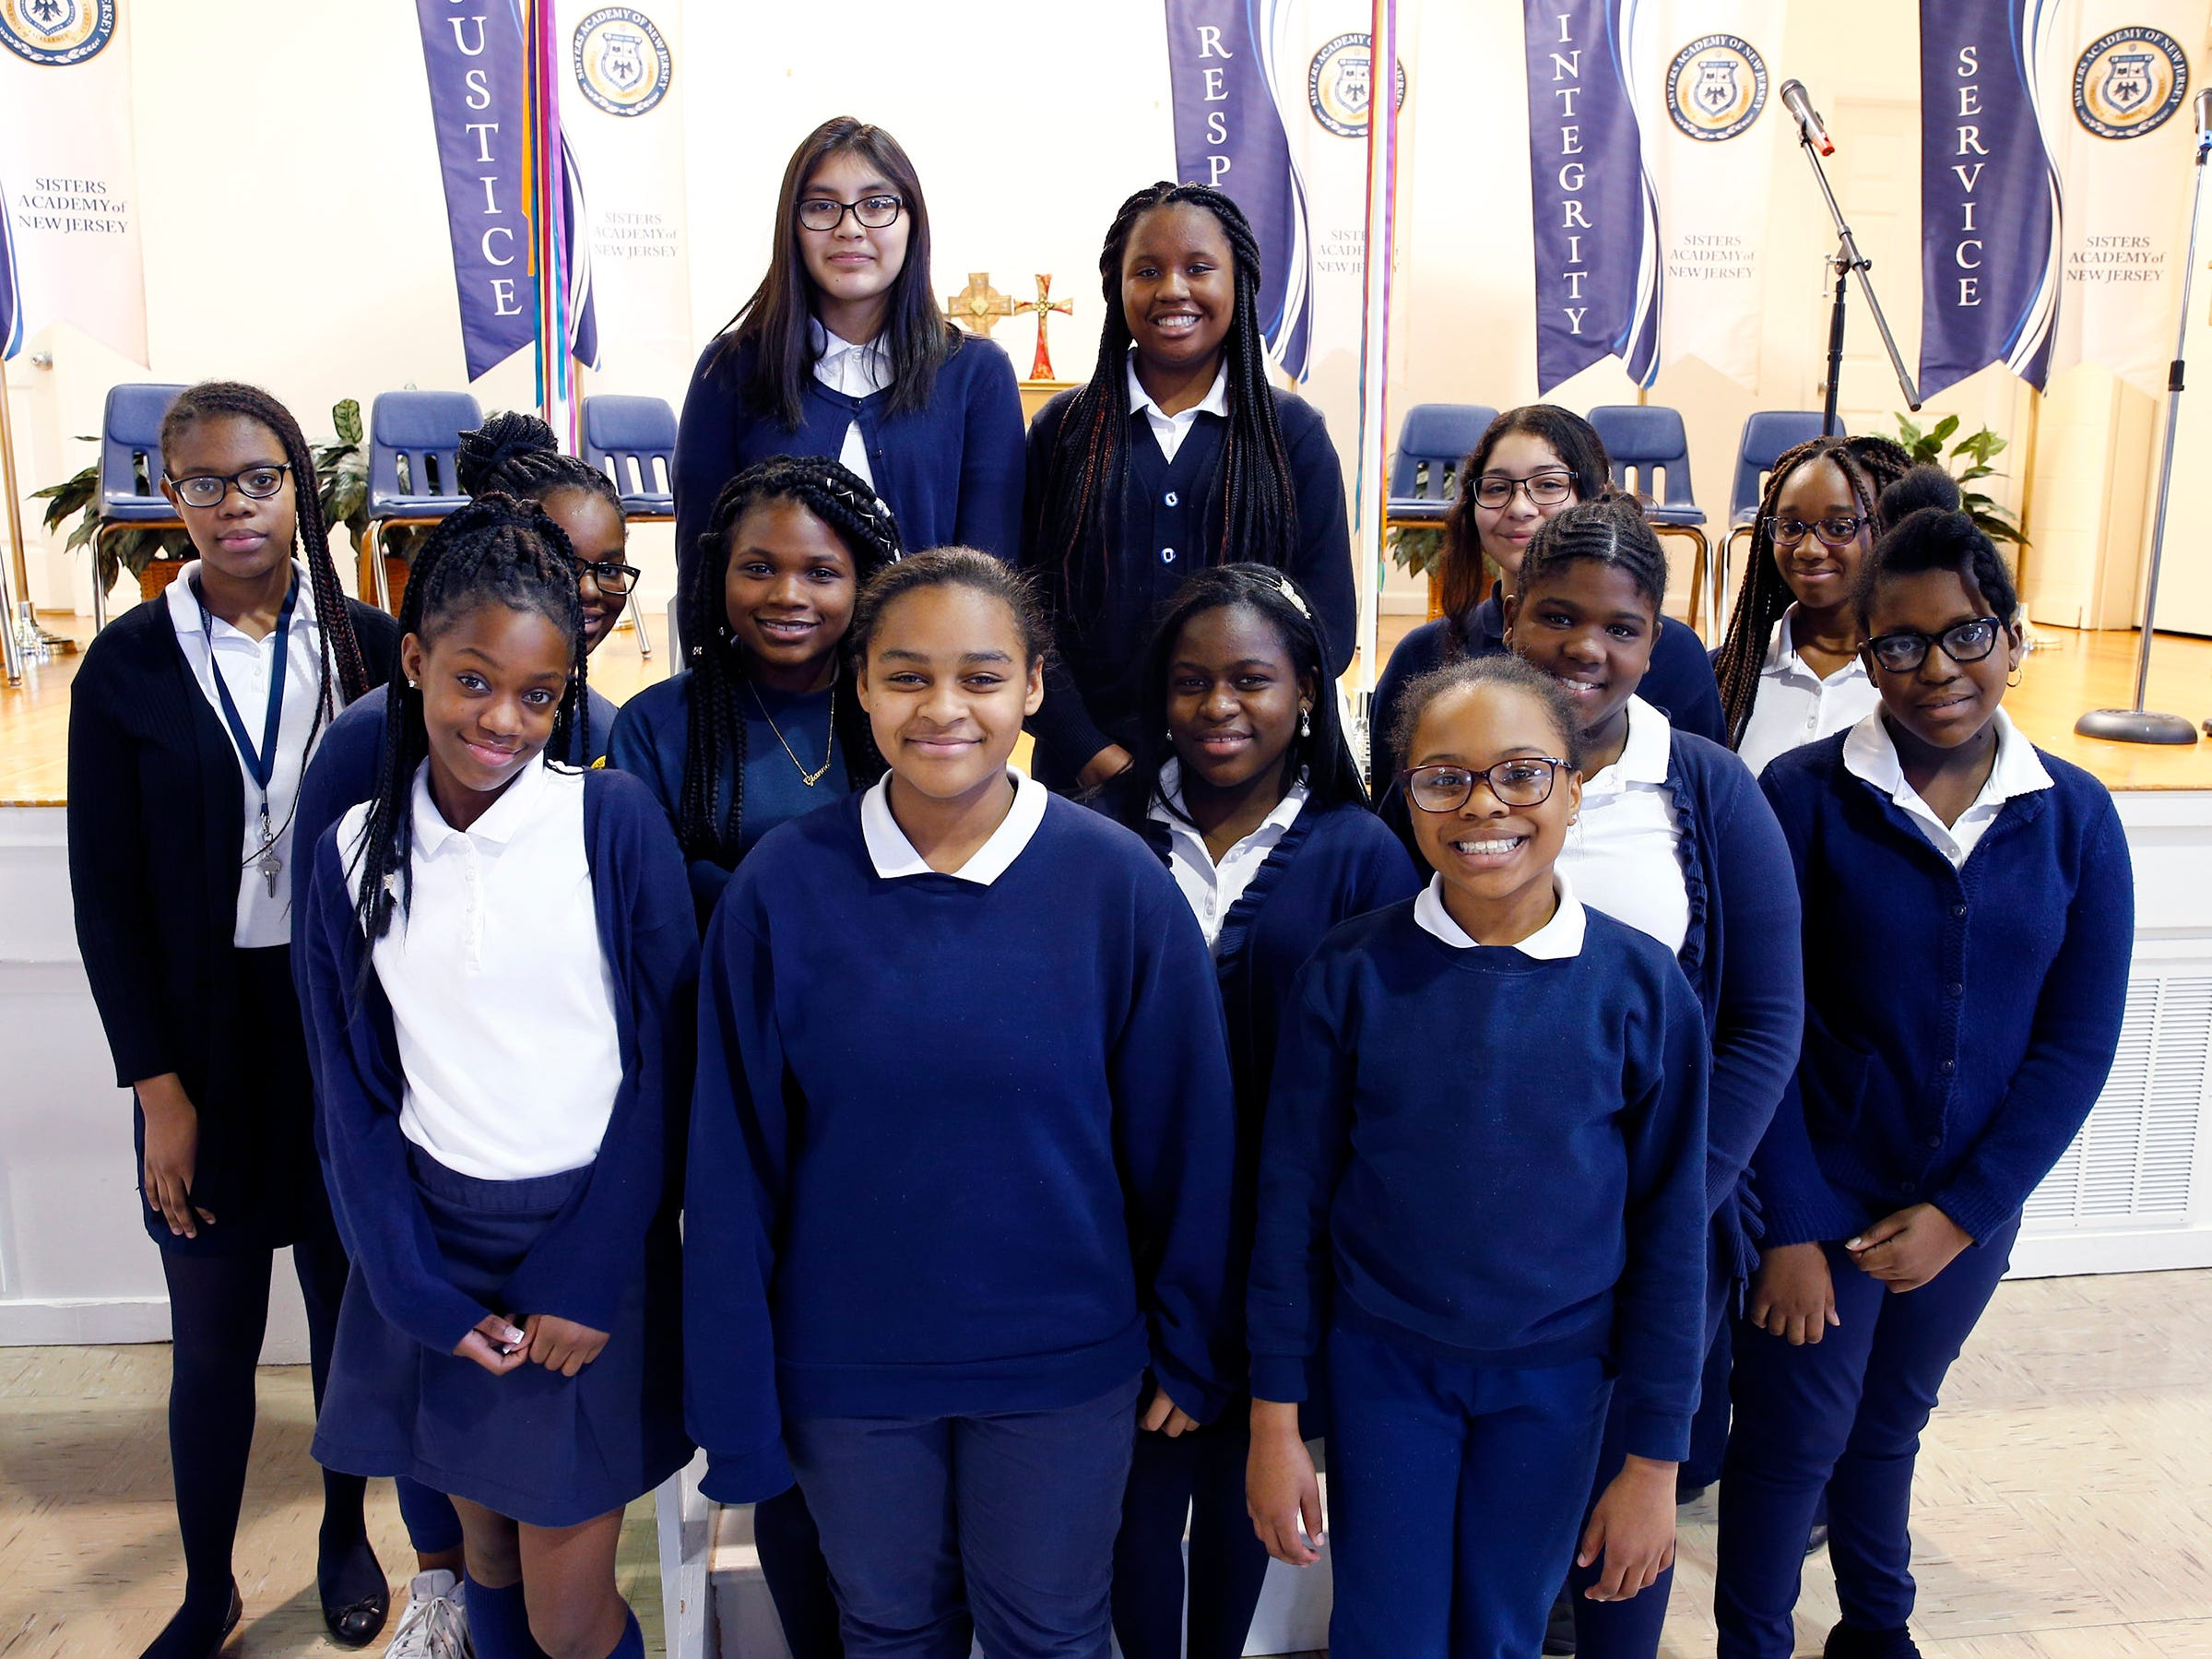 The students competing during the 8th Annual Miller Speaking Contest at the Sisters Academy in Asbury Park gather for a group photo before the competition Thursday, March 14, 2019.